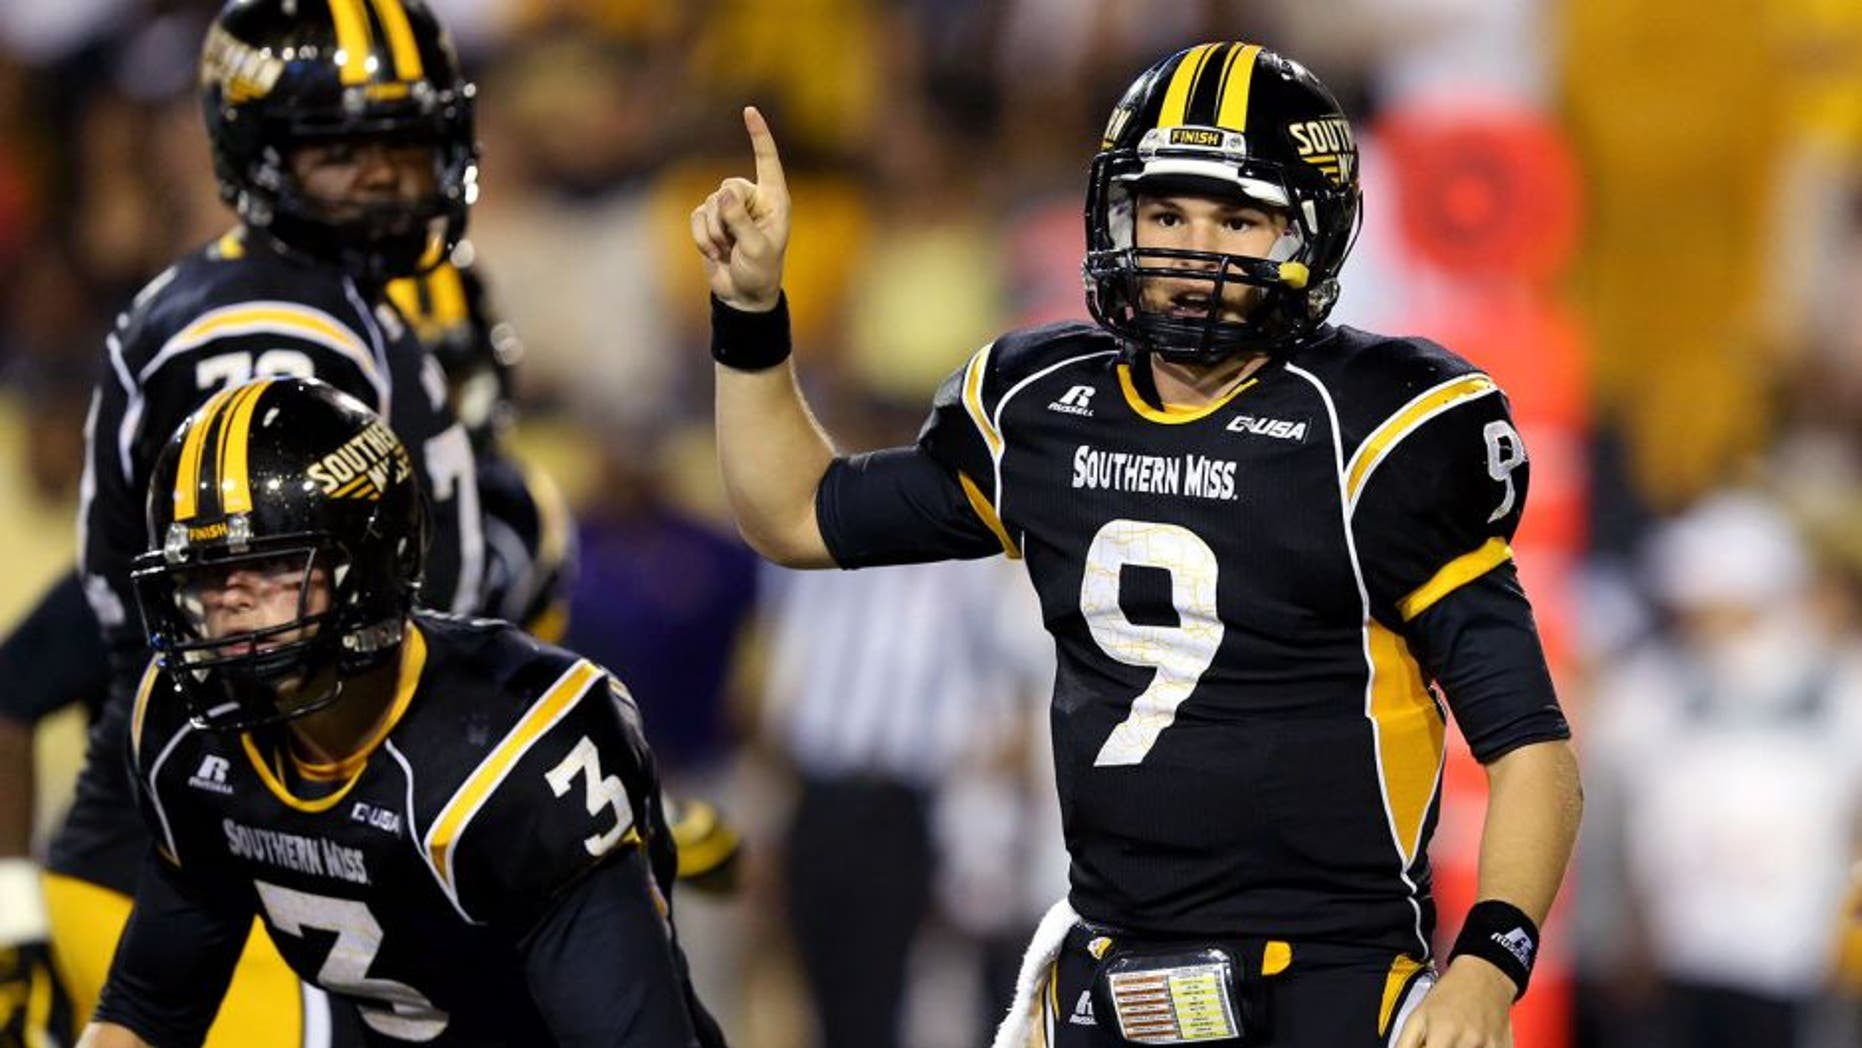 Sep 6, 2014; Hattiesburg, MS, USA; Southern Miss Golden Eagles quarterback Nick Mullens (9) gestures during the second half of their game against the Alcorn State Braves at M.M. Roberts Stadium. Mandatory Credit: Chuck Cook-USA TODAY Sports